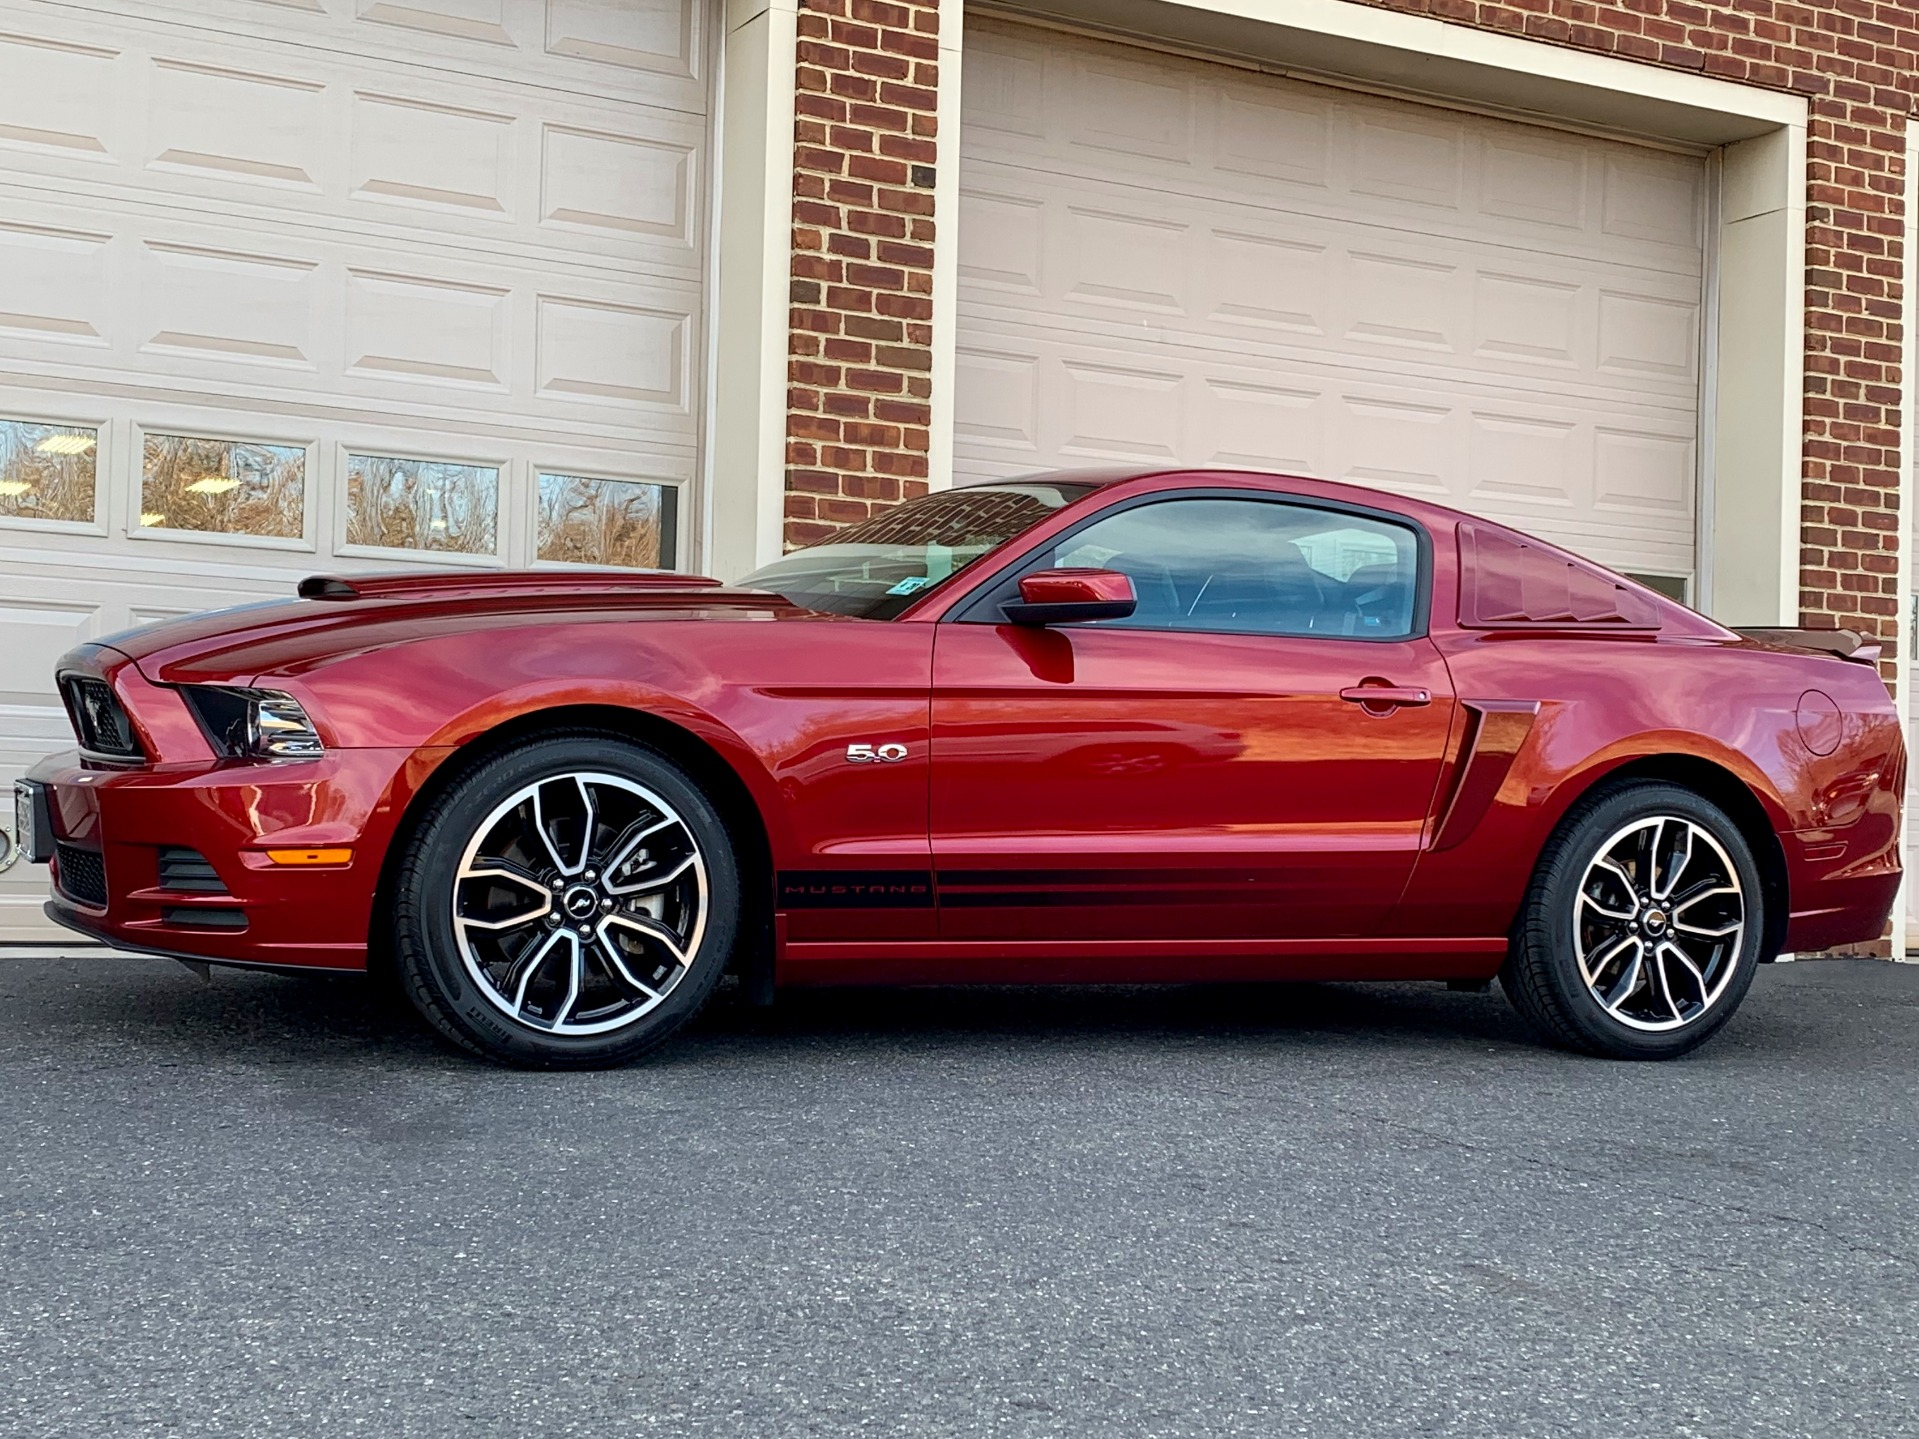 Ford Dealers Nj >> 2014 Ford Mustang GT Premium Stock # 318191 for sale near ...